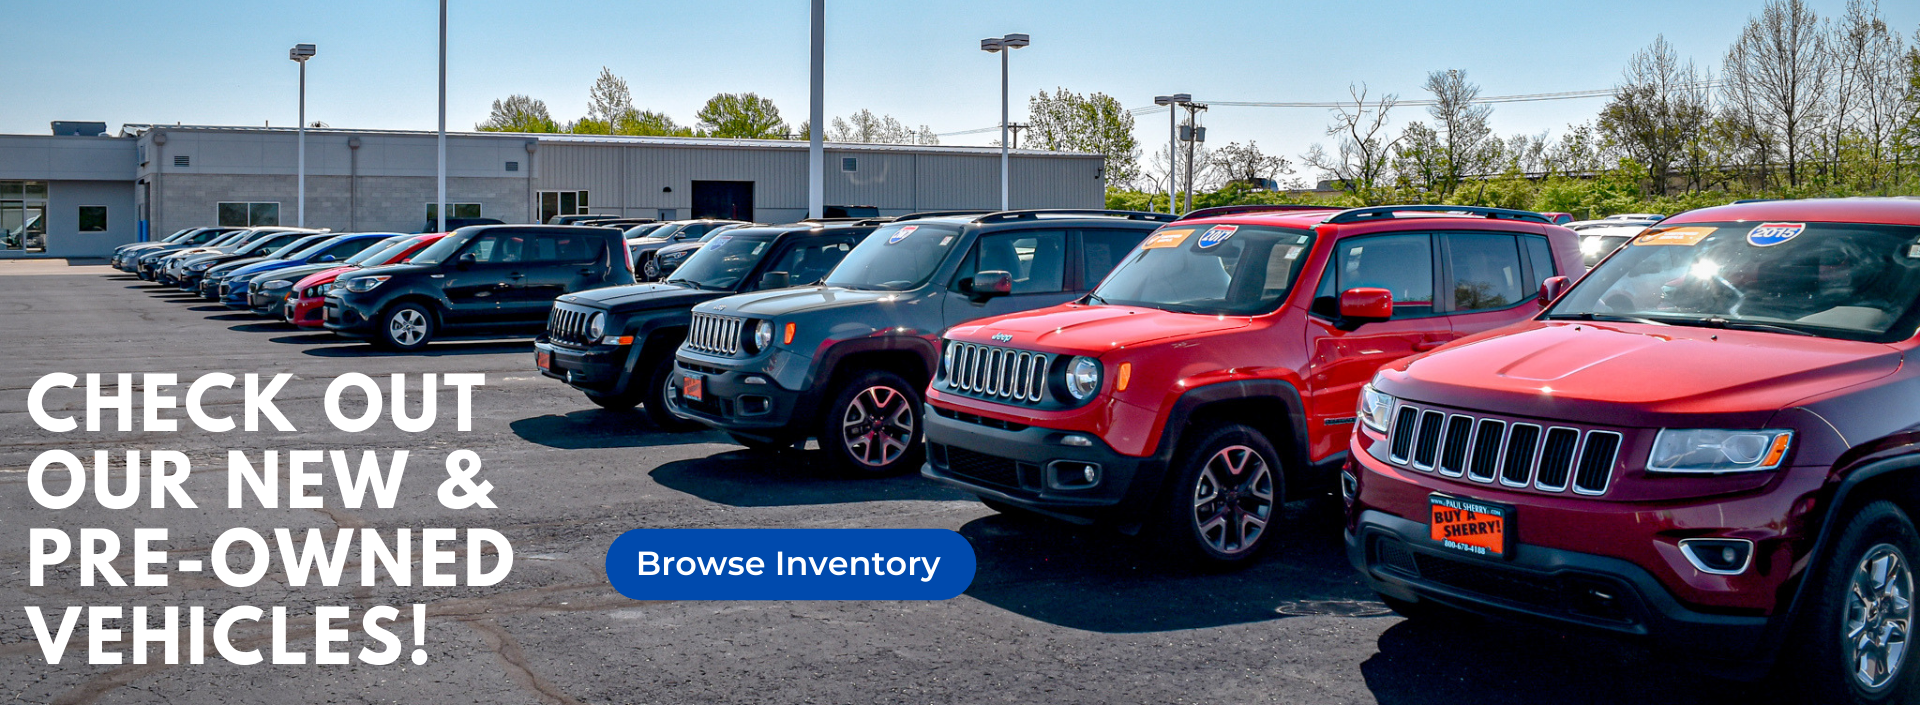 Check Out Our New & Pre-Owned Vehicles